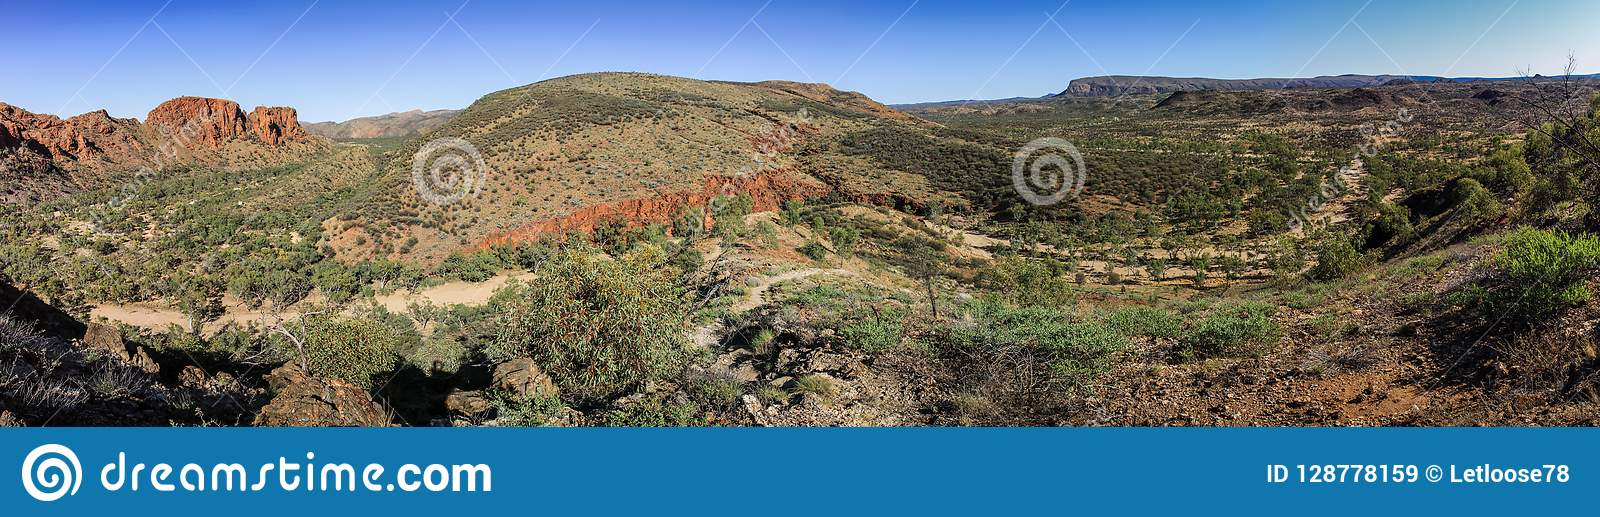 Panoramic view on The sheer quartzite cliffs at Trephina Gorge, East MacDonnell Ranges, Northern Territory, Australia